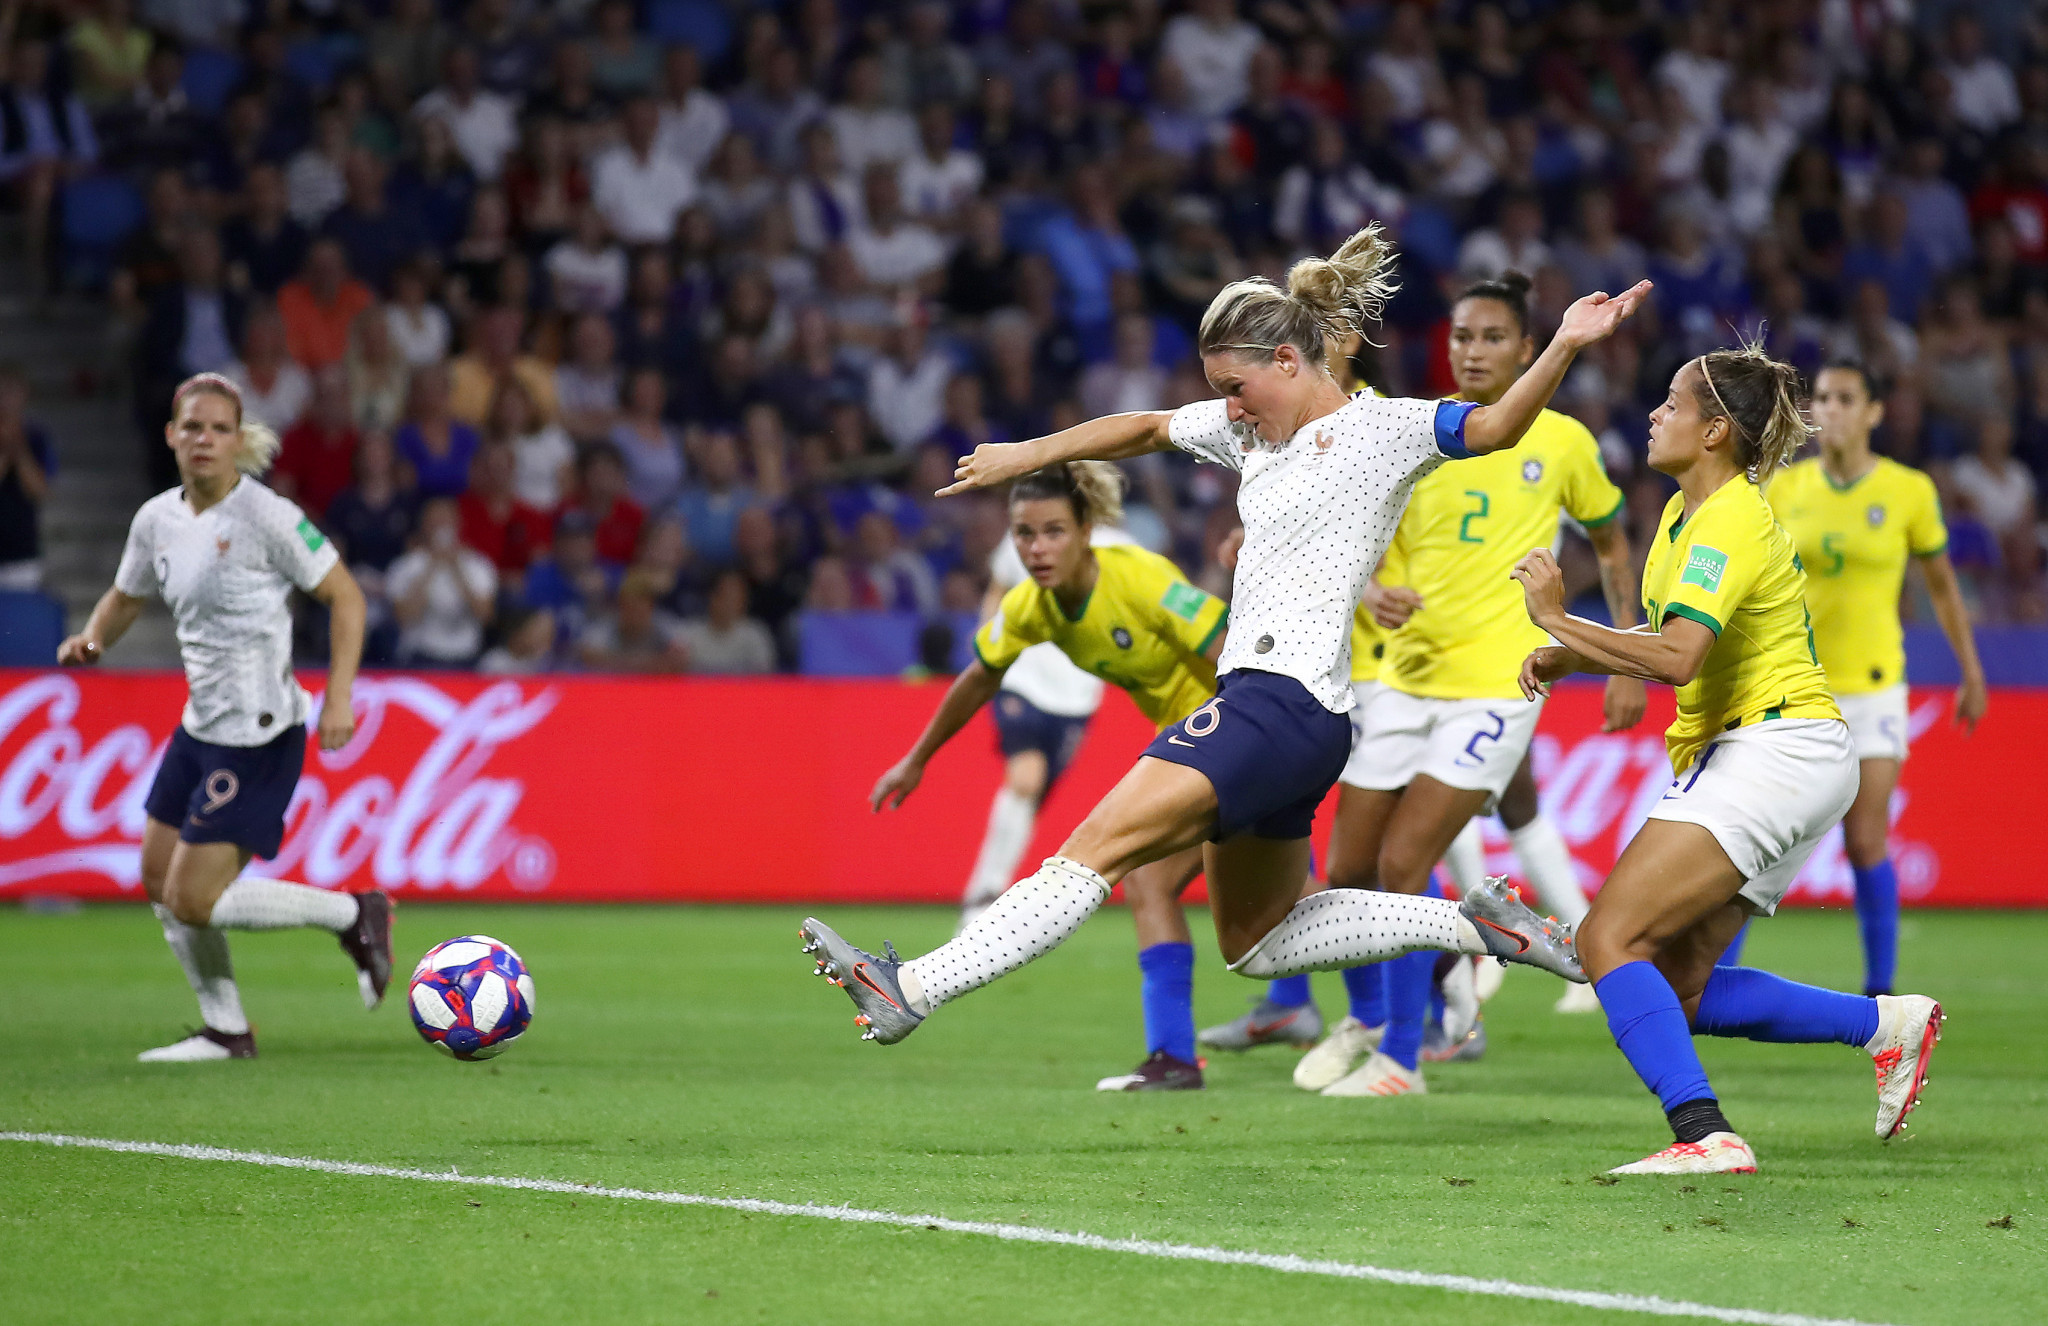 Hosts France battle past Brazil in FIFA Women's World Cup after England beat bad-tempered Cameroon